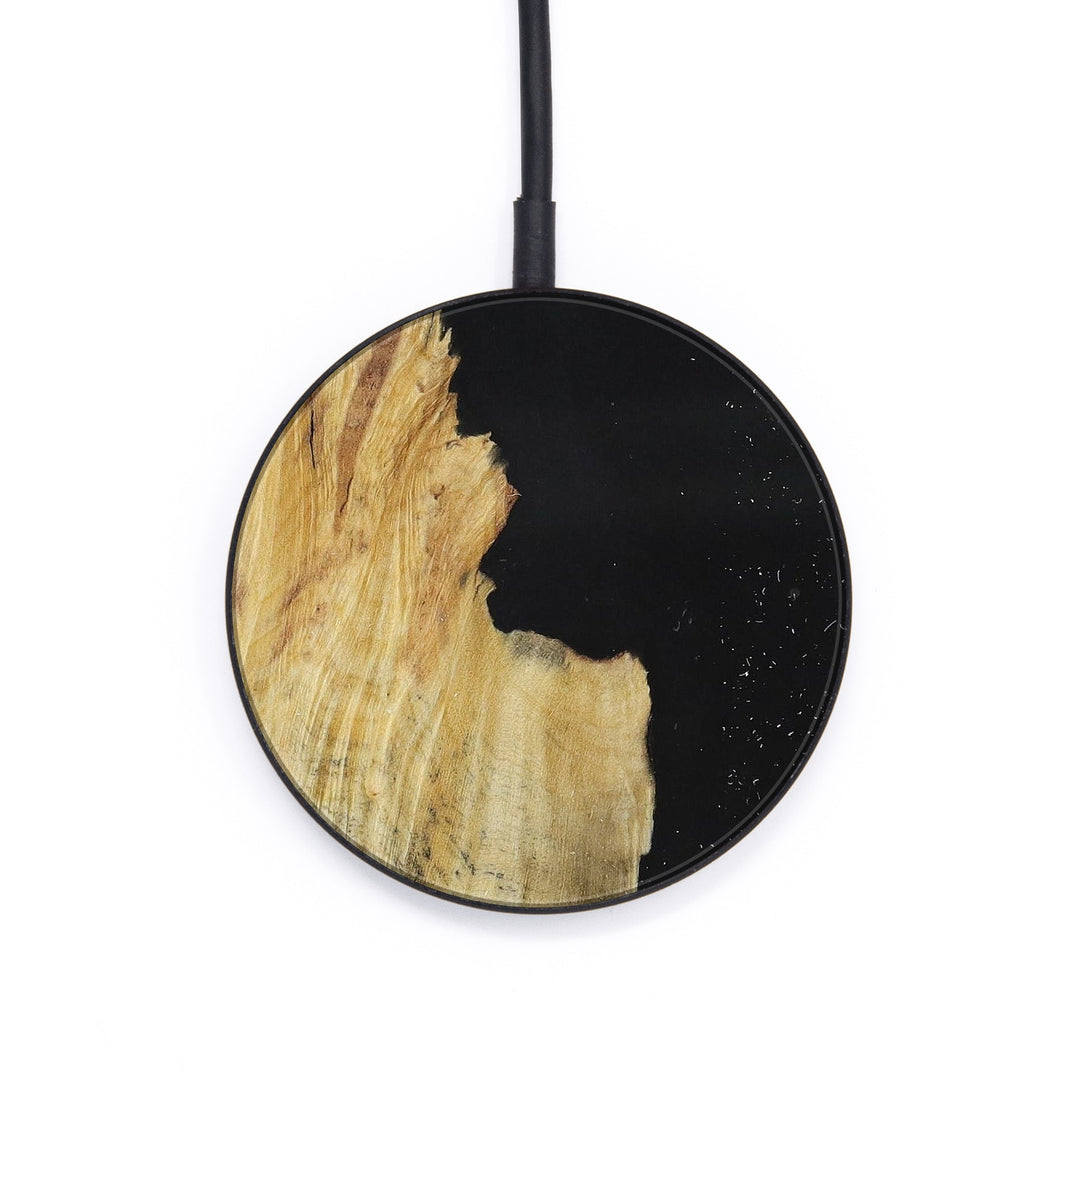 Circle Wood+Resin Wireless Charger - Aile (Pure Black, 390174)